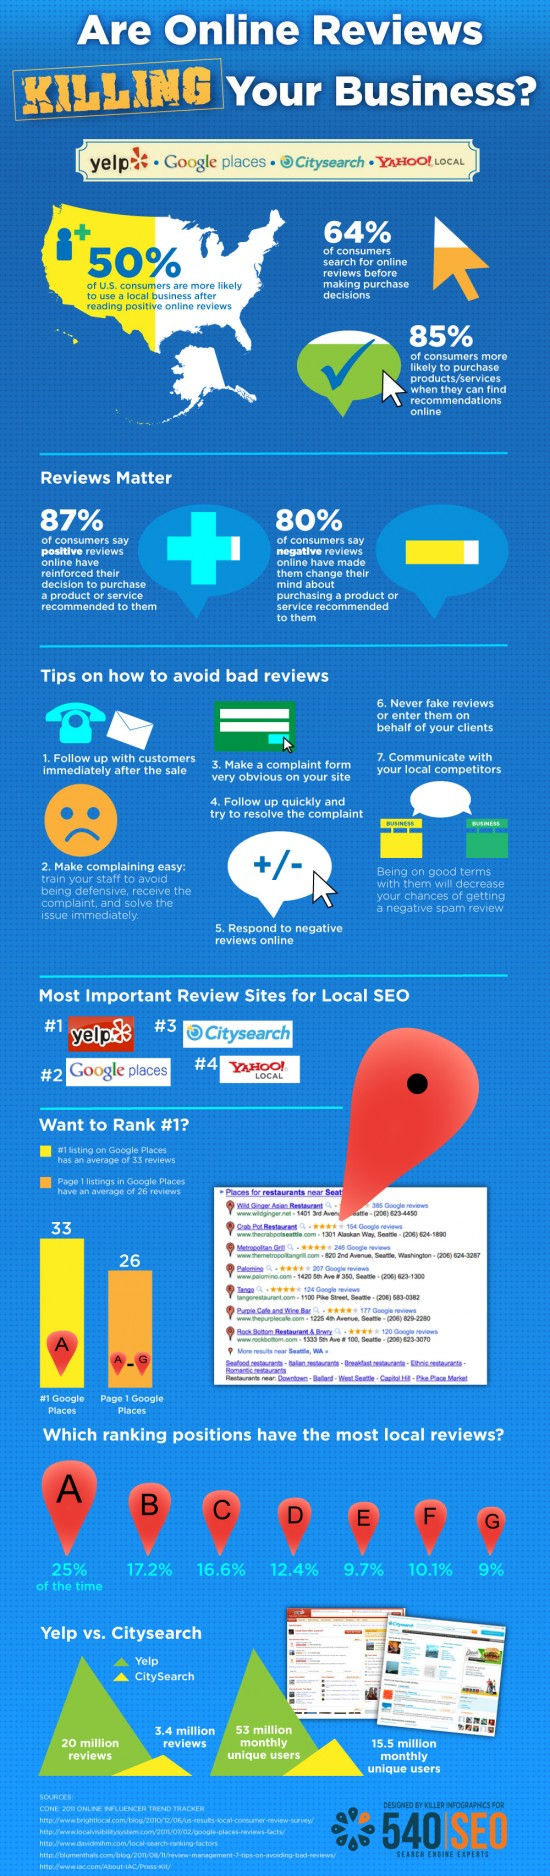 New Infographic: Are Local Reviews Killing Your Business?